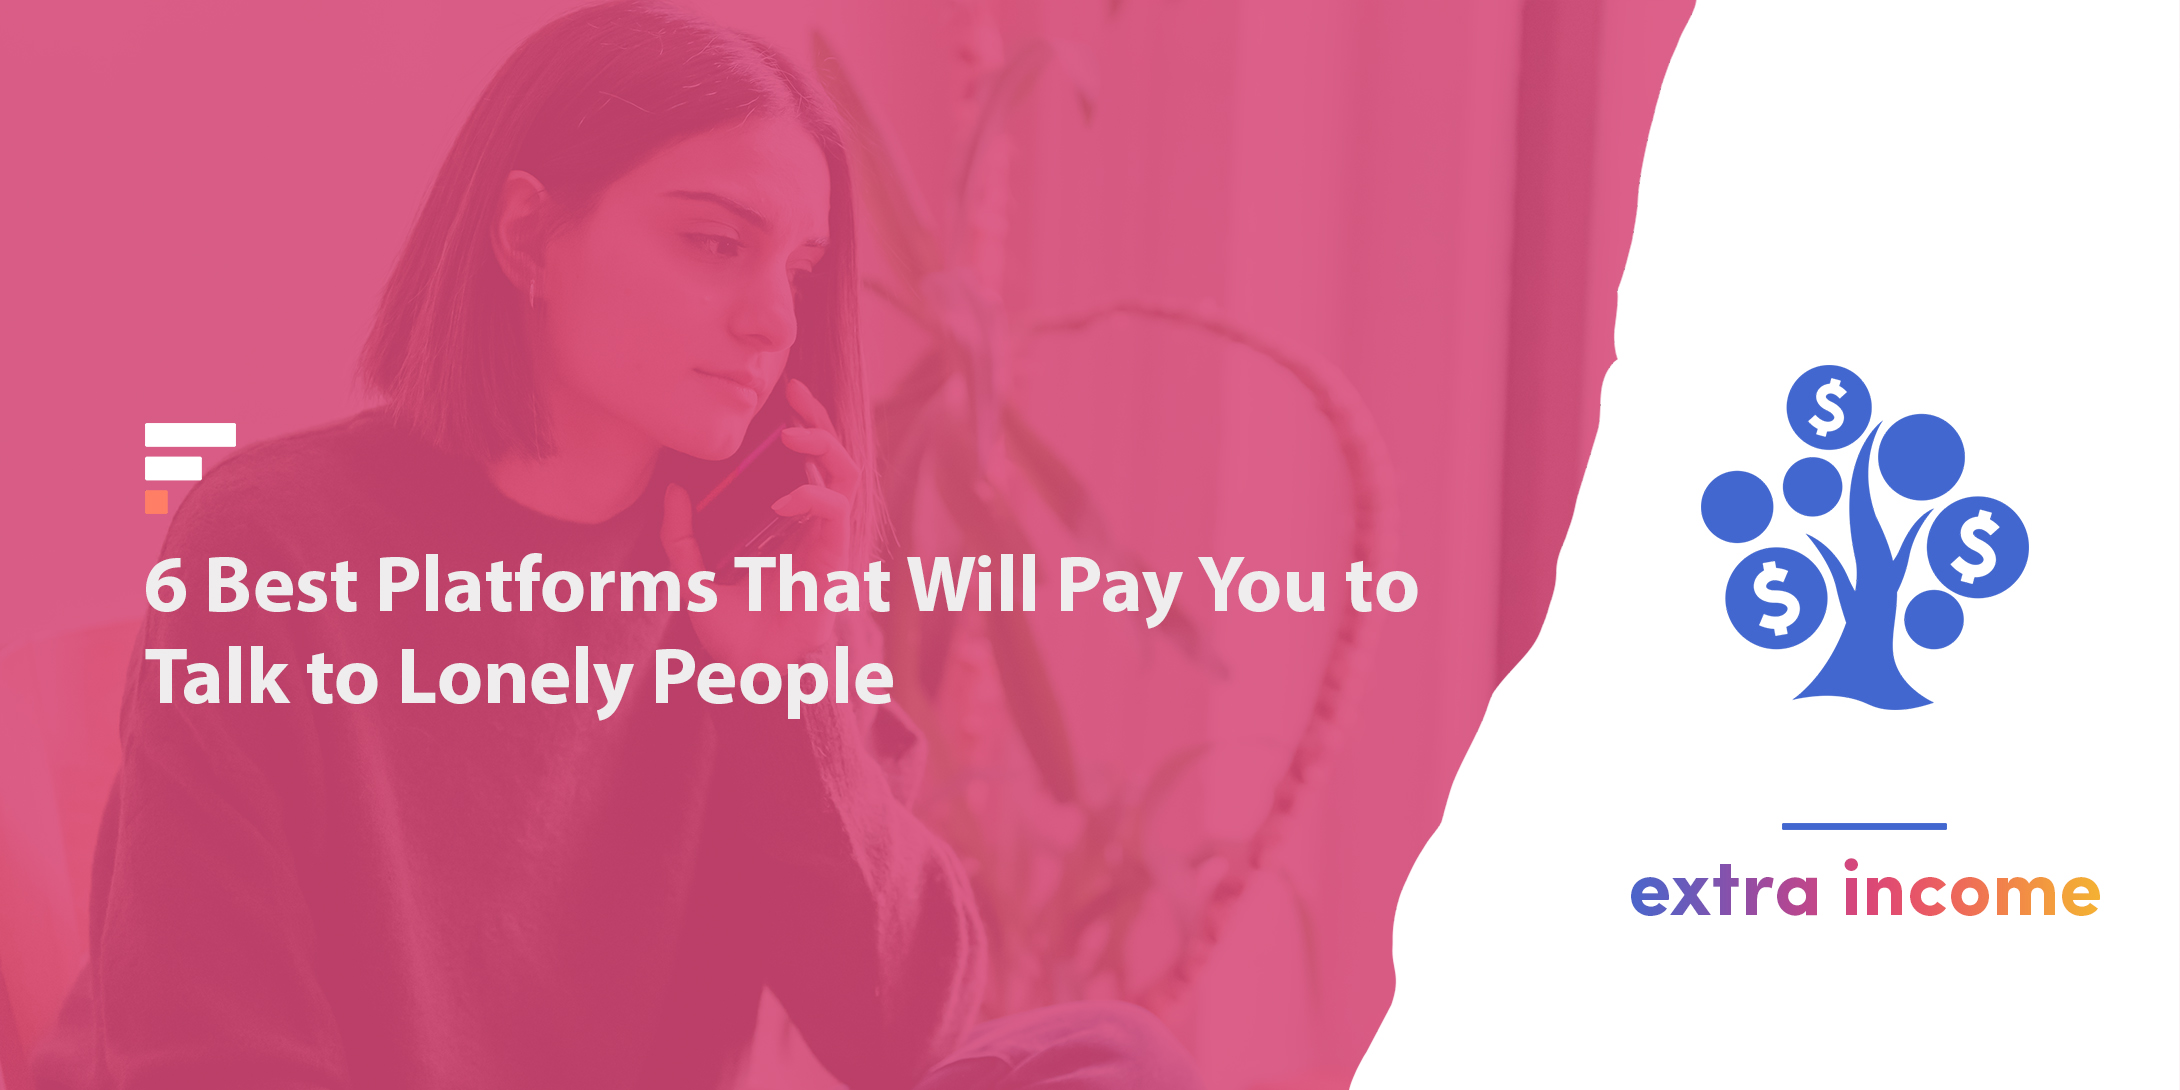 Get paid to talk to lonely people